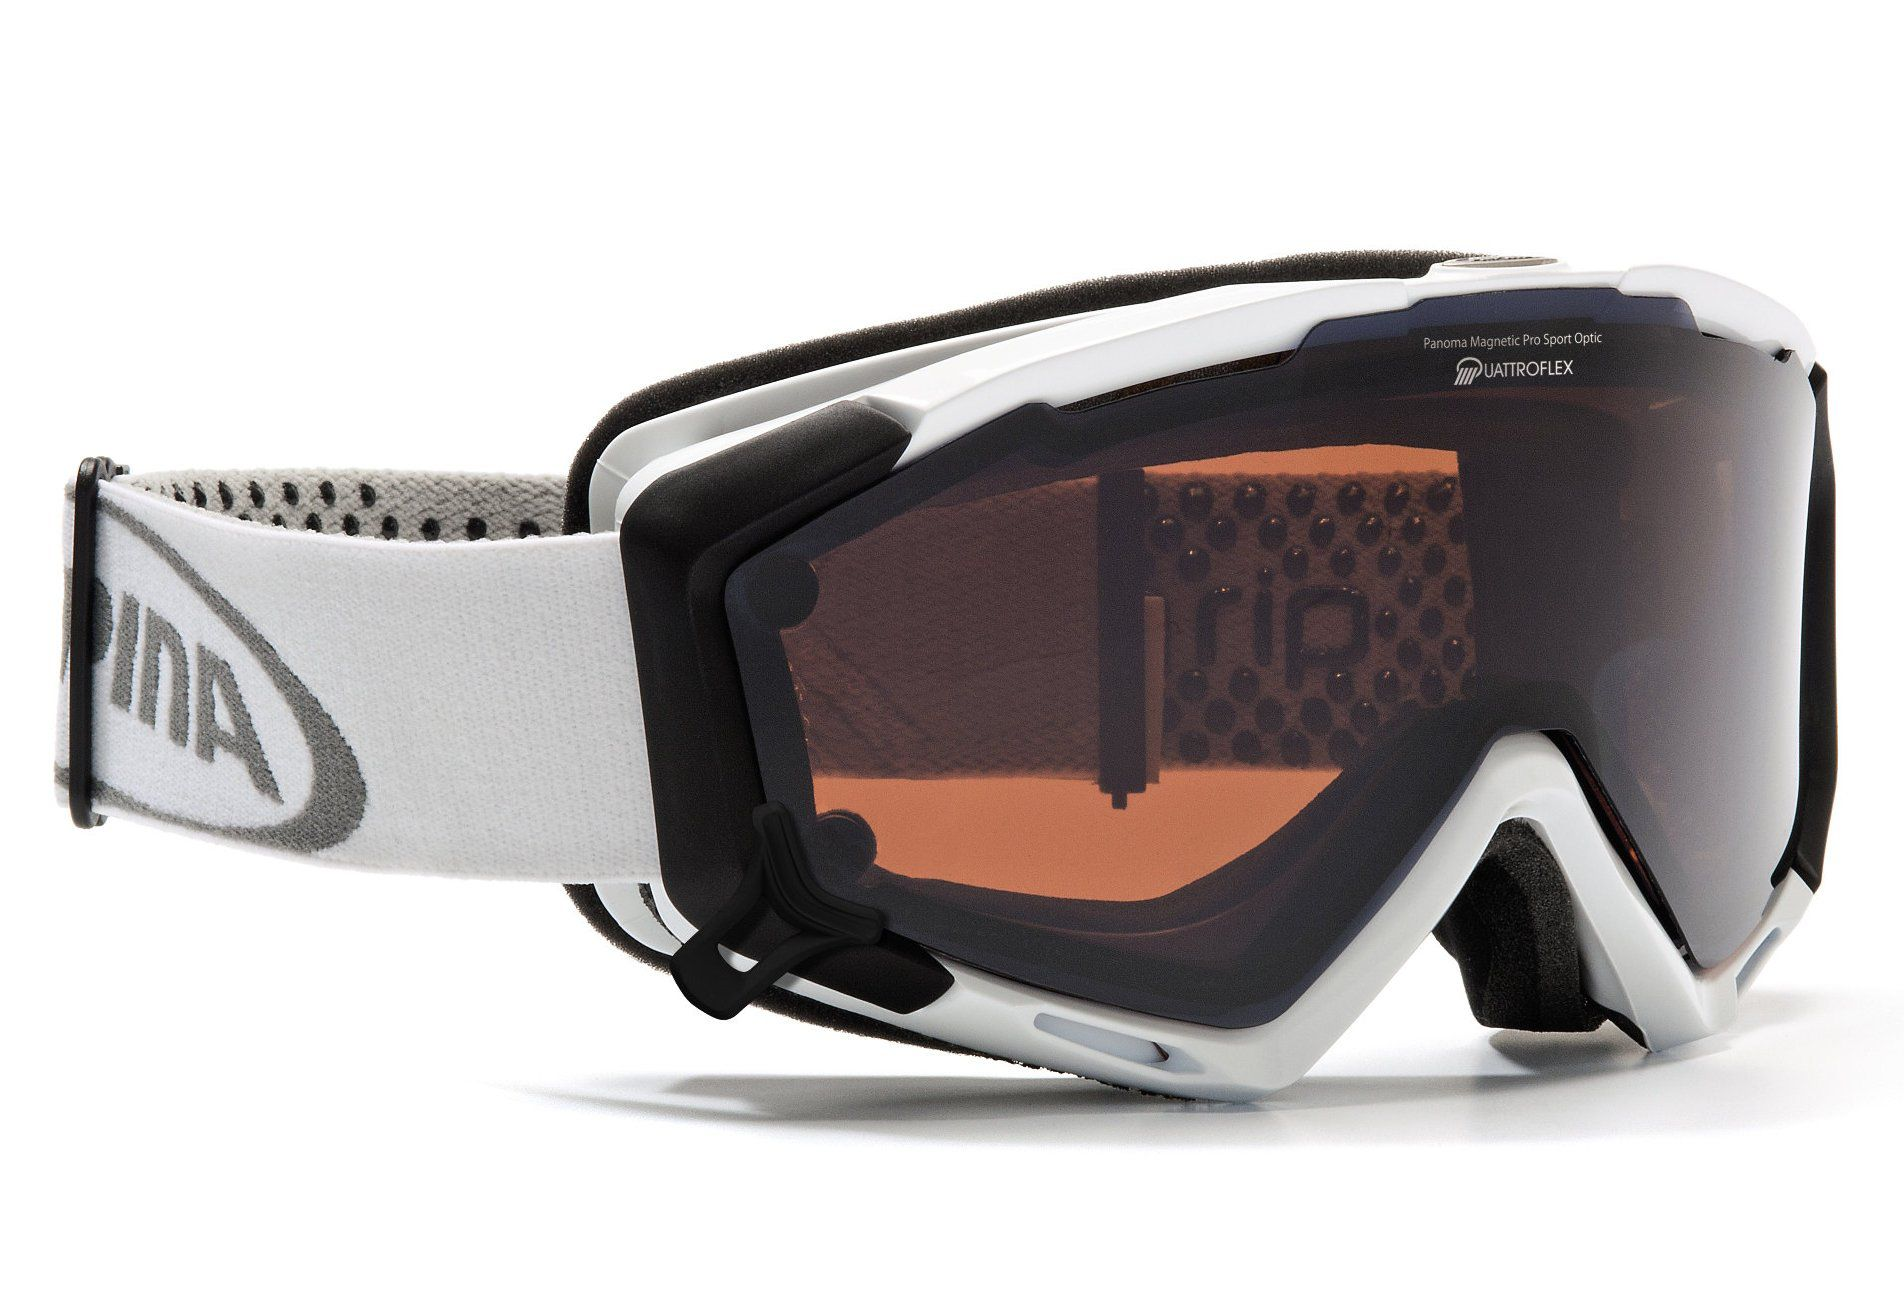 ALPINA SPORT Skibrille, weiss, Alpina, »Panoma Magnetic«, Made in Germany